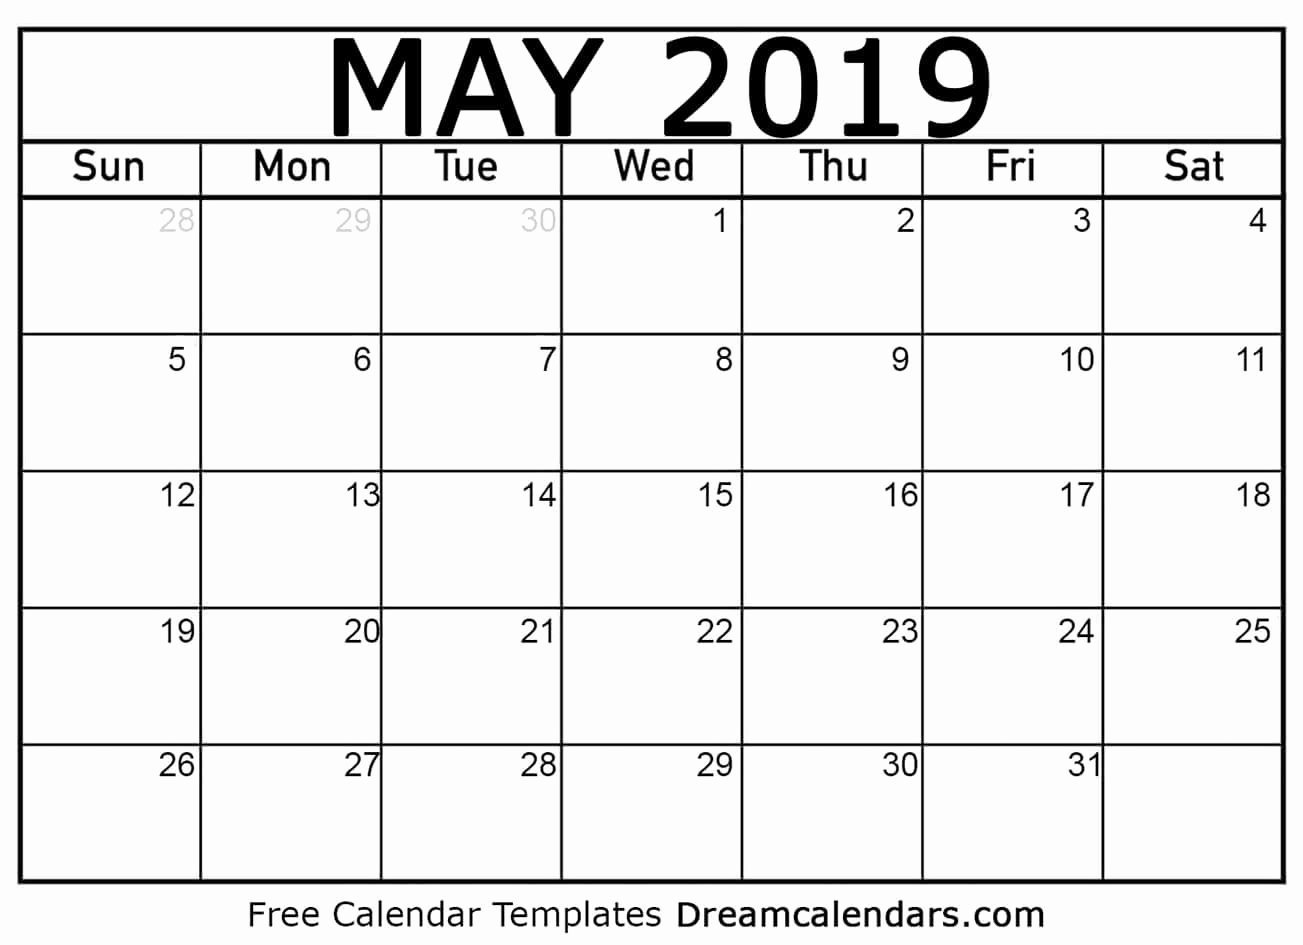 Blank Calendar Template 2019 Luxury How to A Printed or Printable Calendar for May 2019